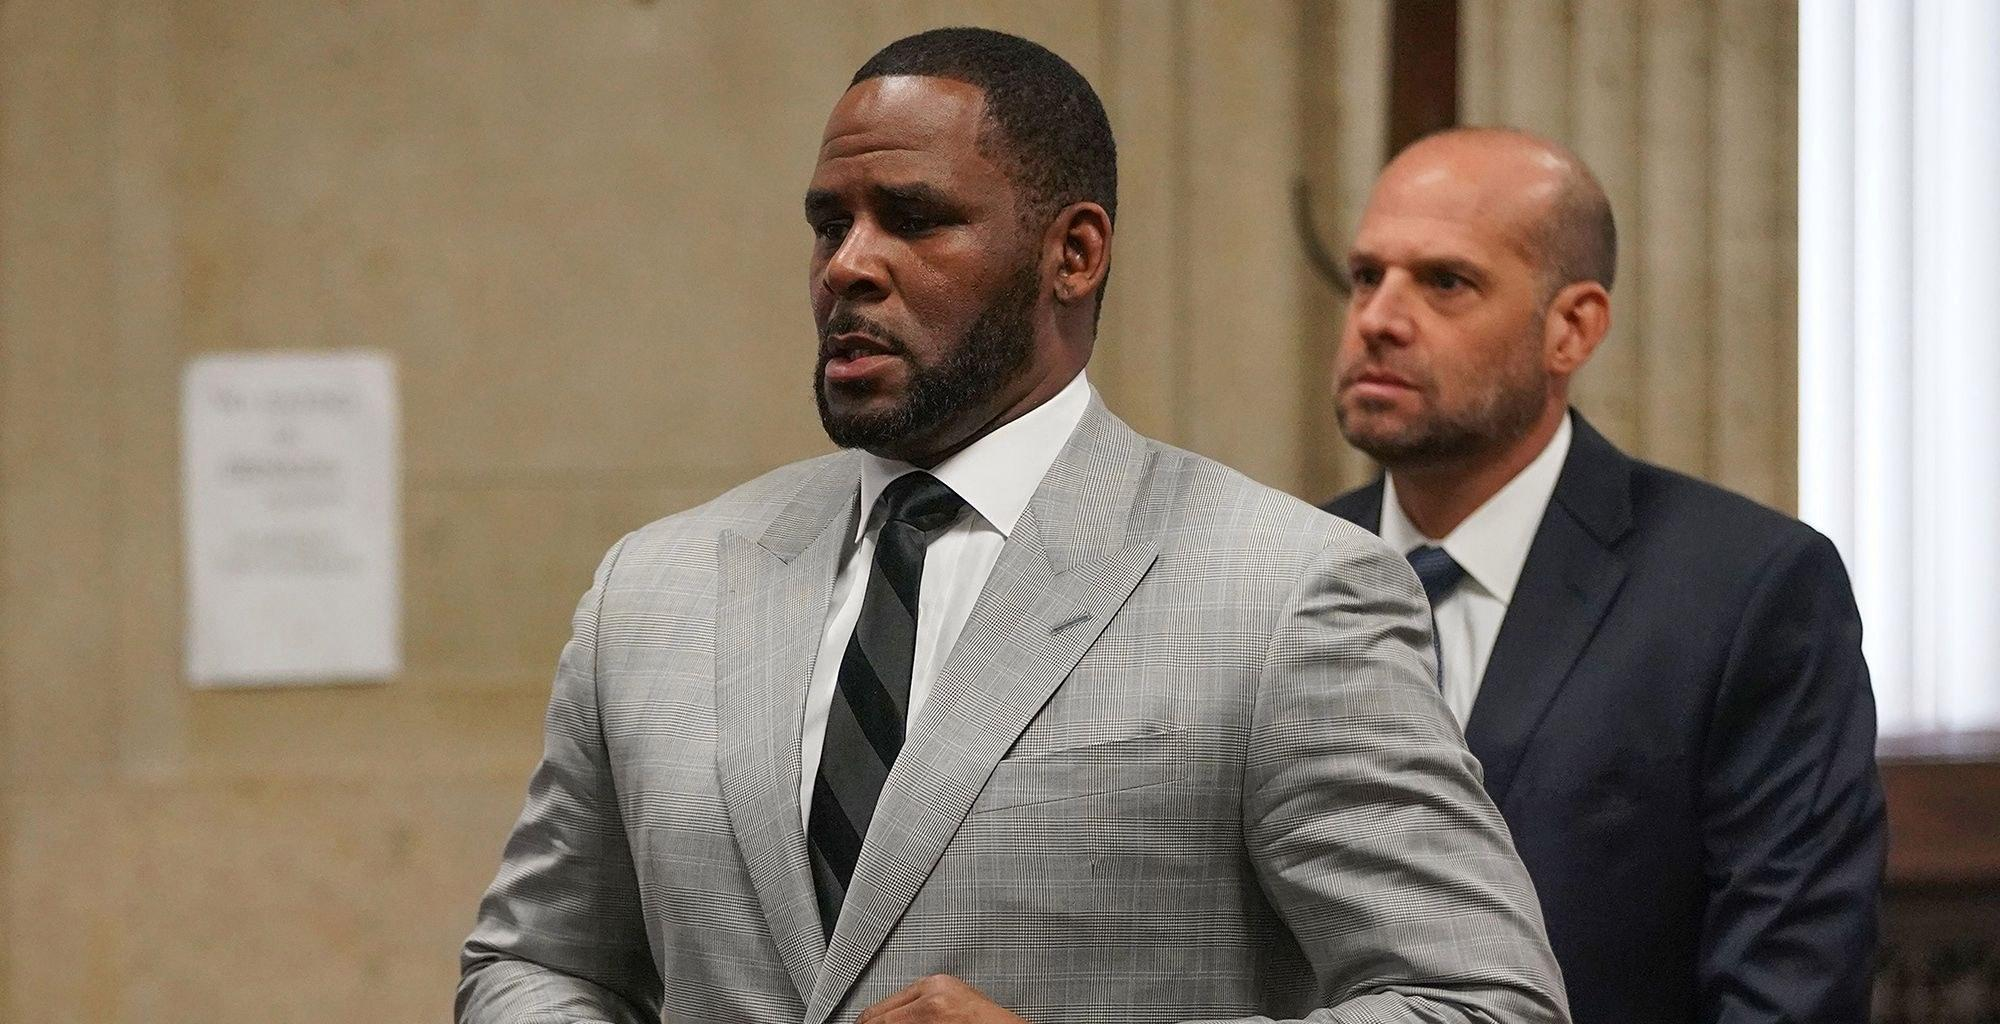 R. Kelly Is Slammed For Playing The Victim After He Misses Court Date For This Painful Reason